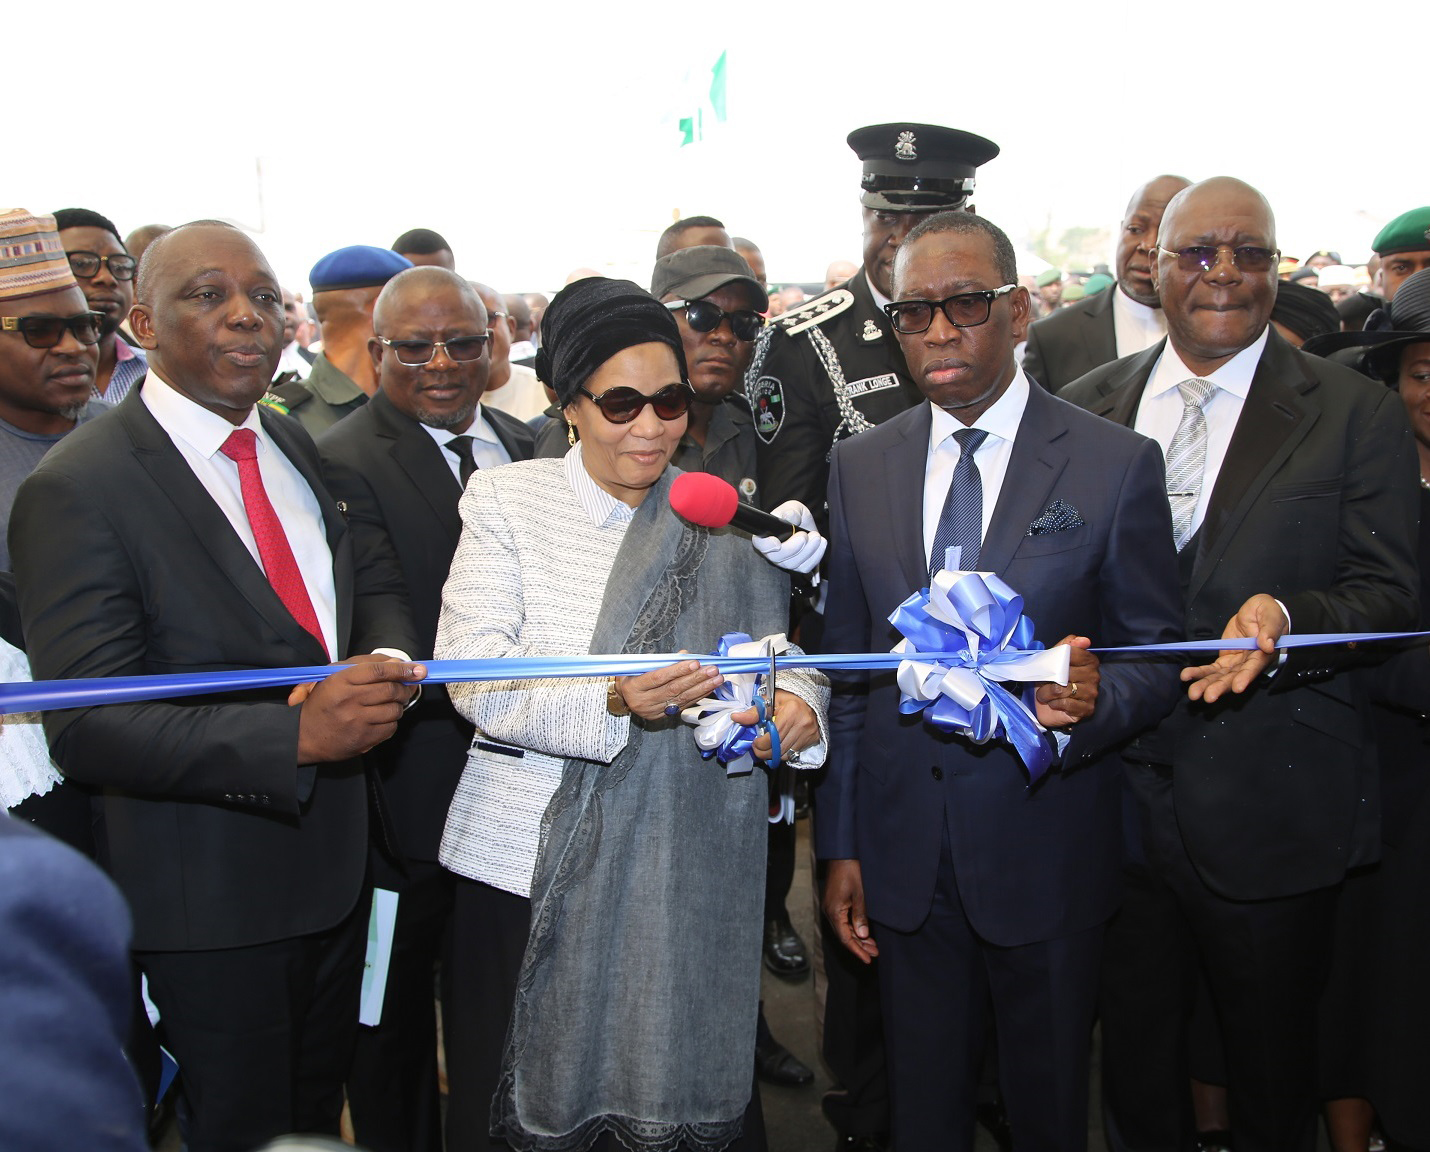 Nigeria gets 17th Court of Appeal division - Vanguard